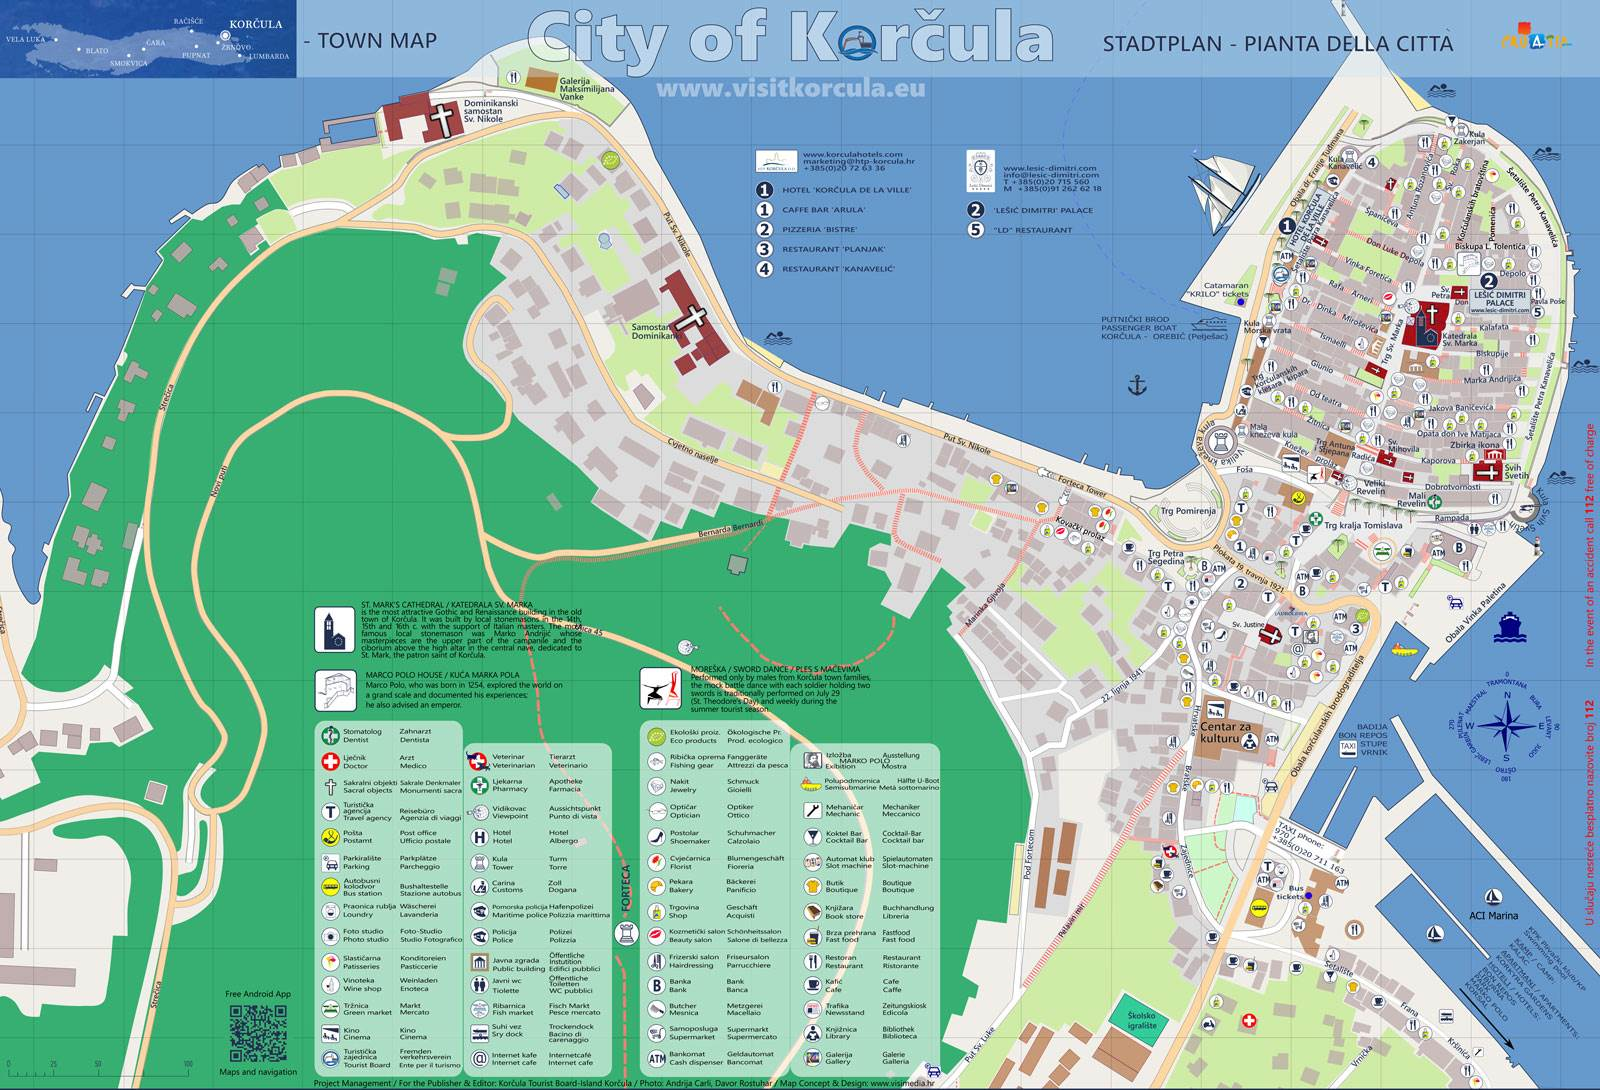 -images-excursions-korcula-boat-excursion-y-map-of-city-korcula.jpg